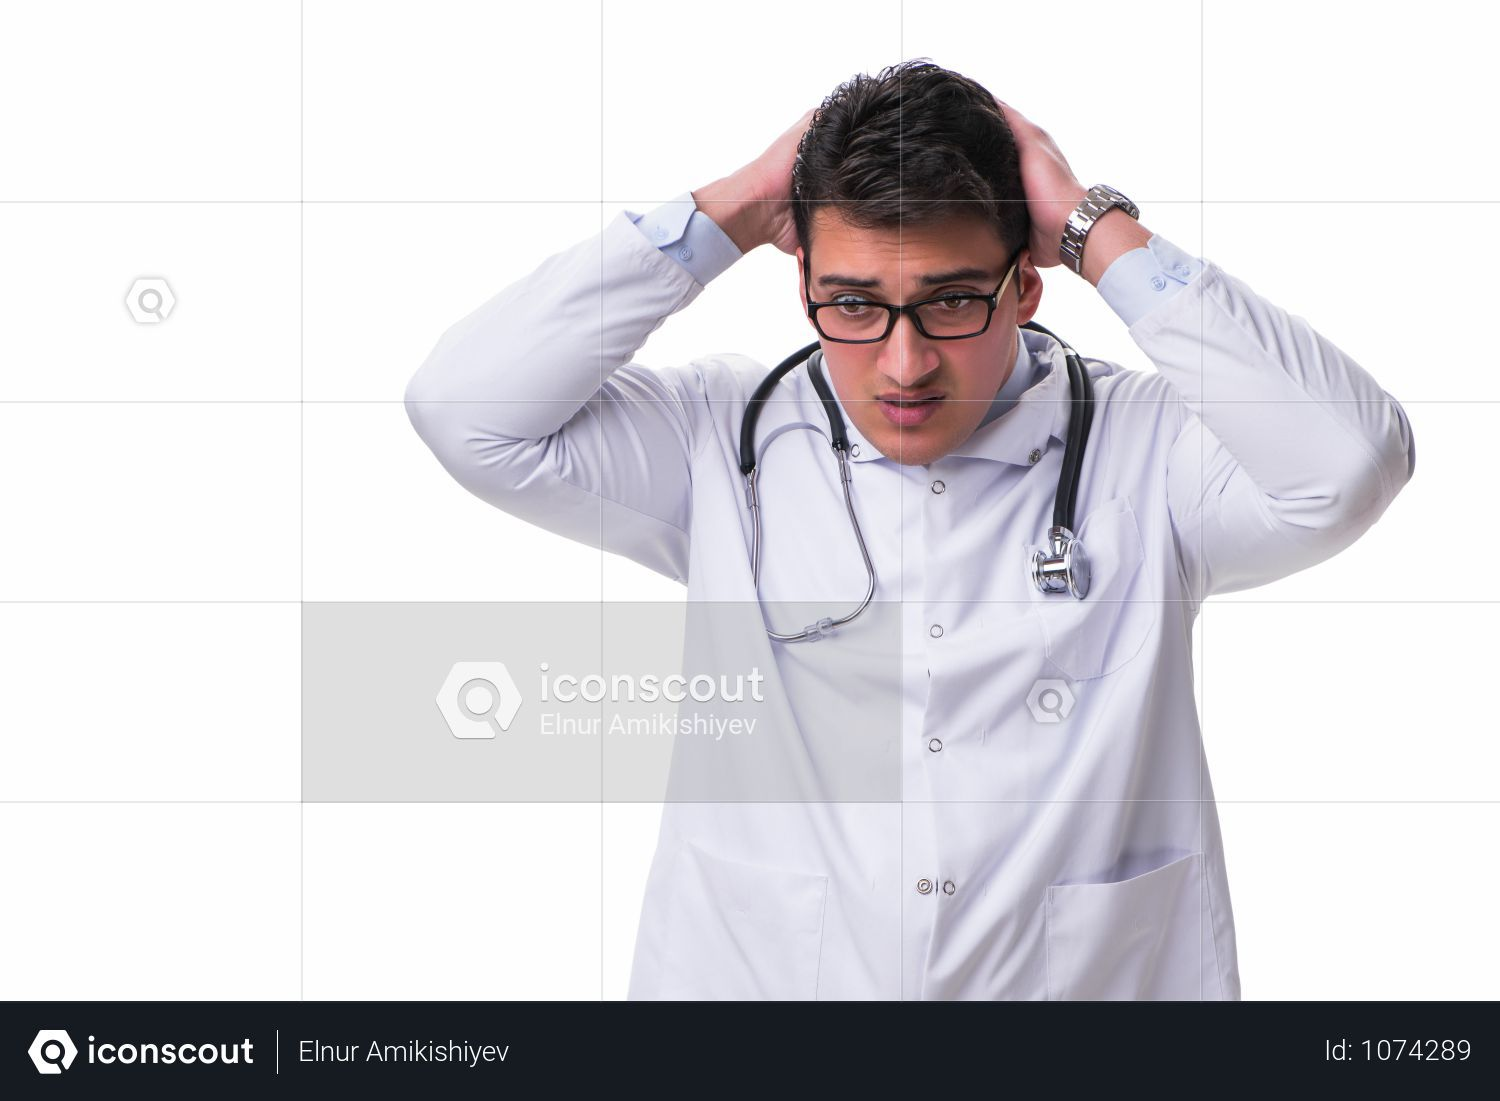 Premium The Young Male Doctor Isolated On White Background Photo Download In Png Jpg Format Male Doctor White Background Photo White Background